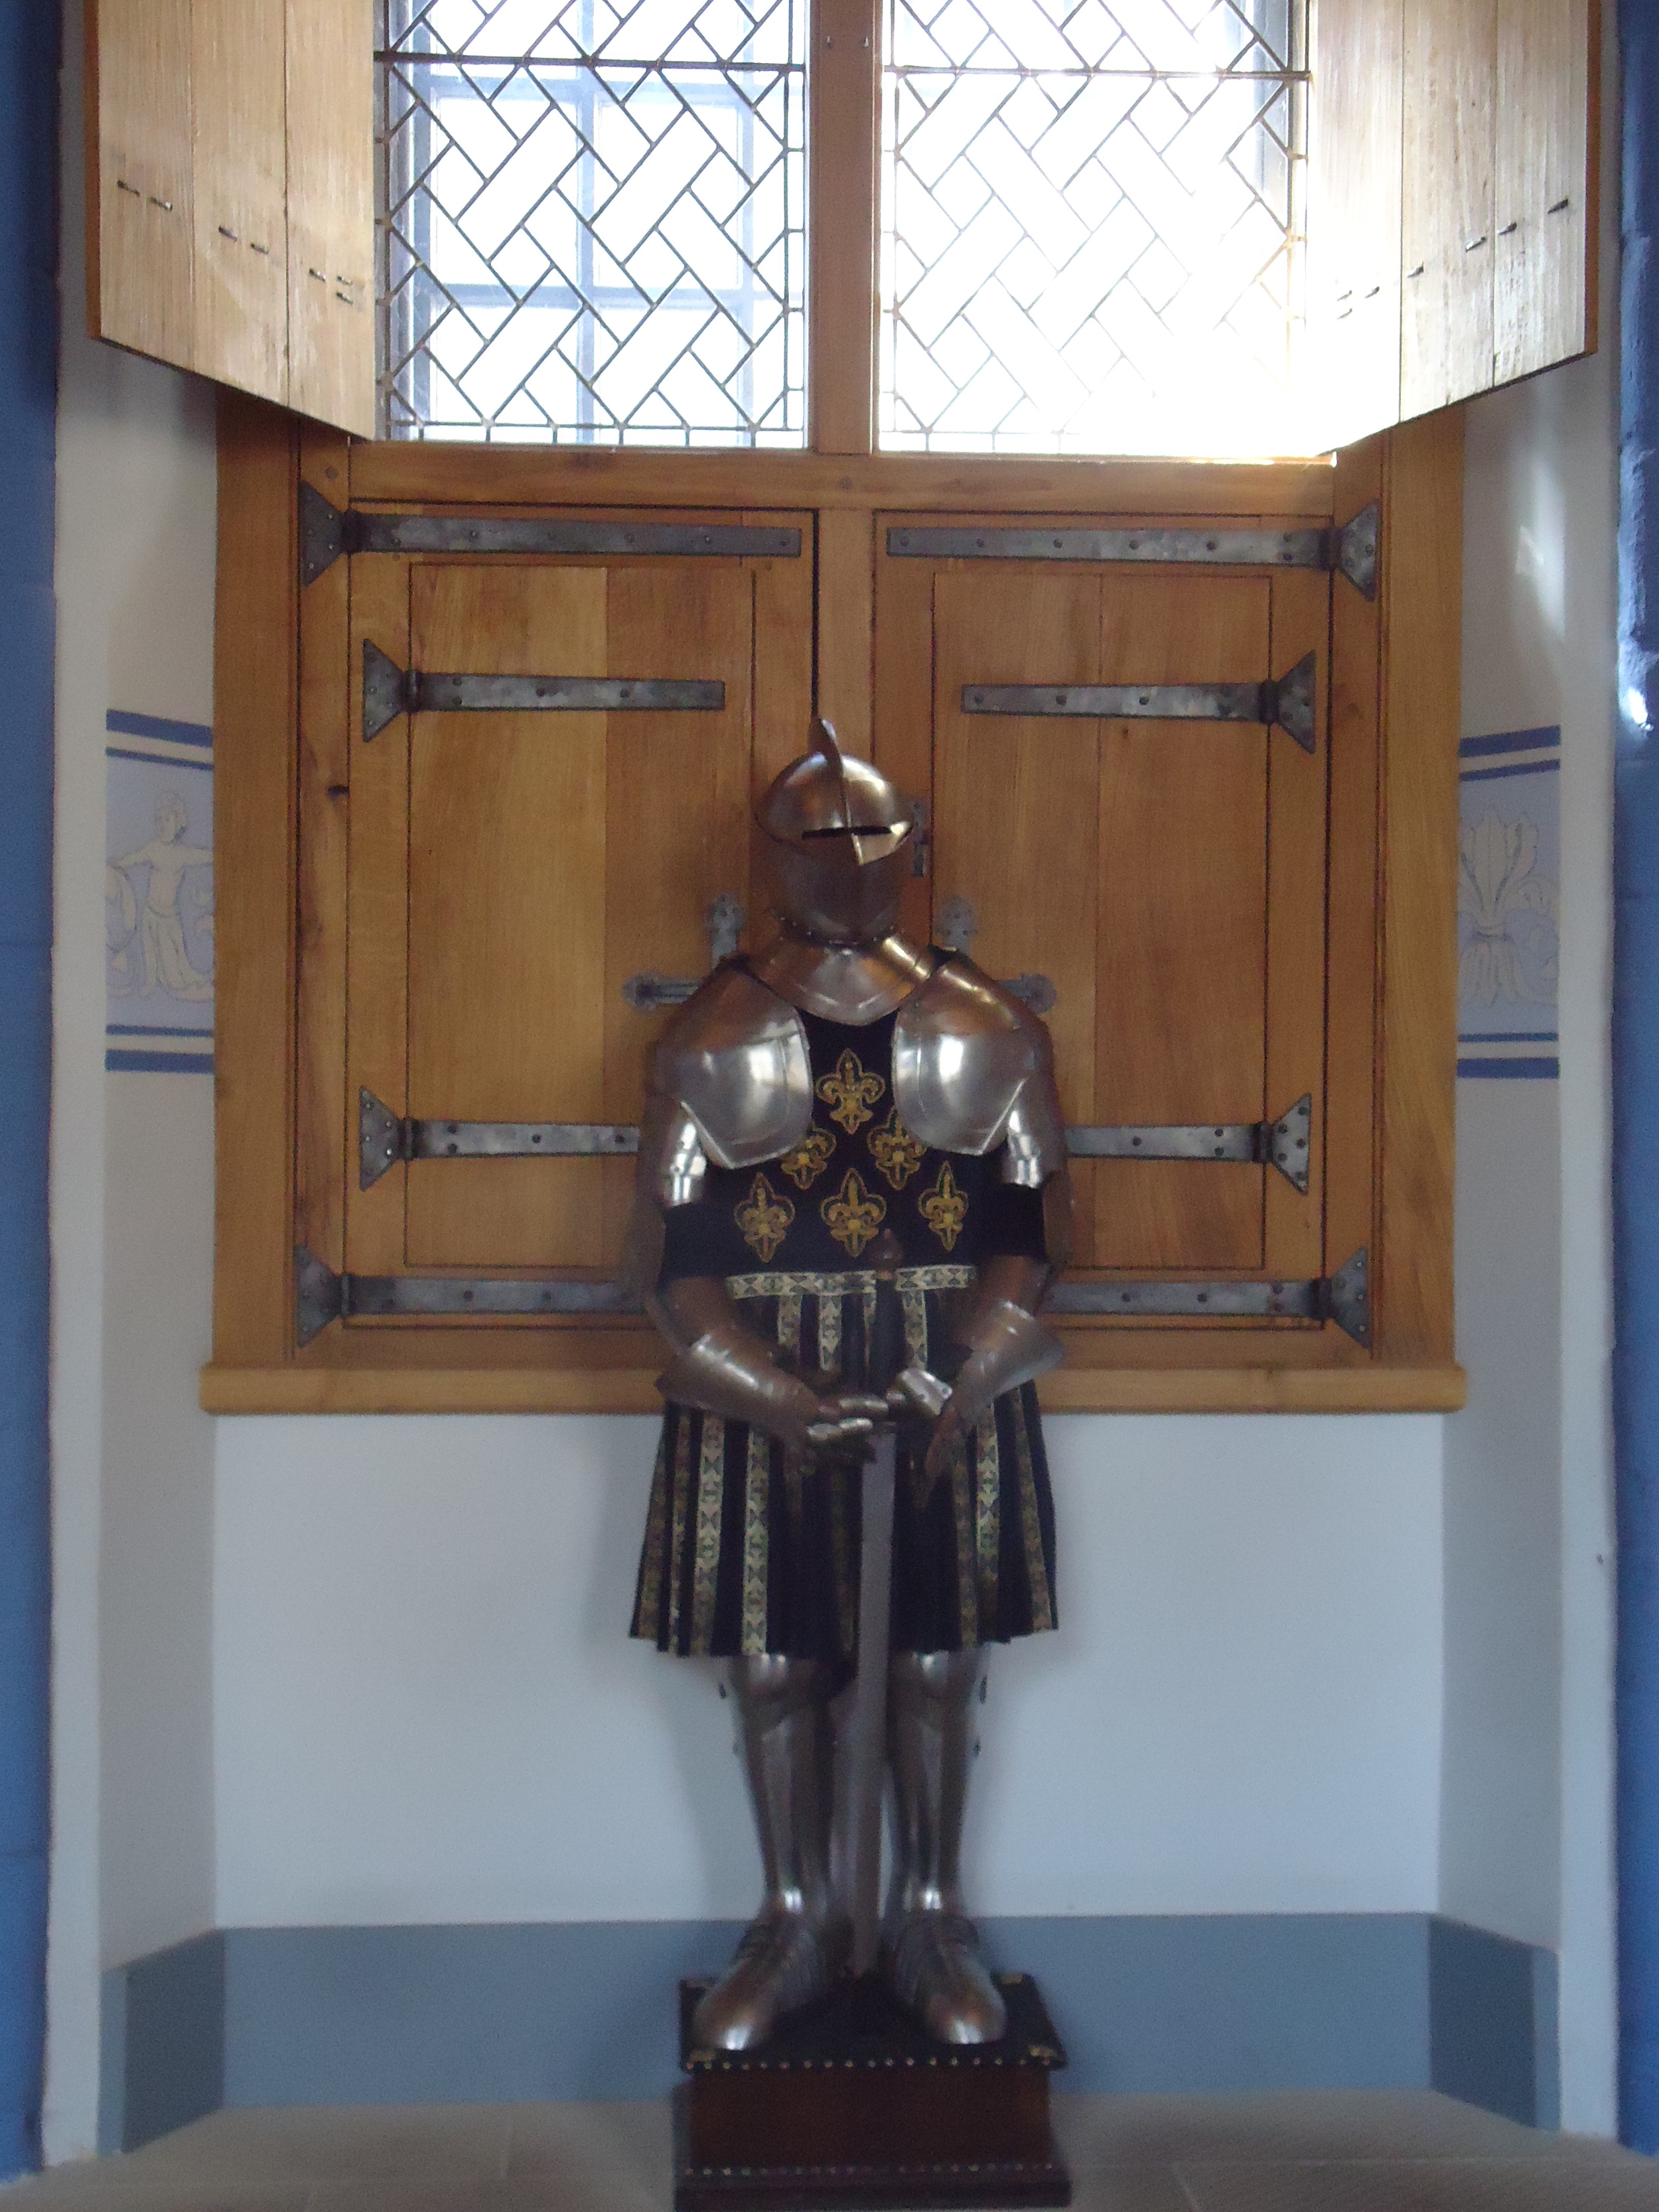 Stirling Castle suit of armor